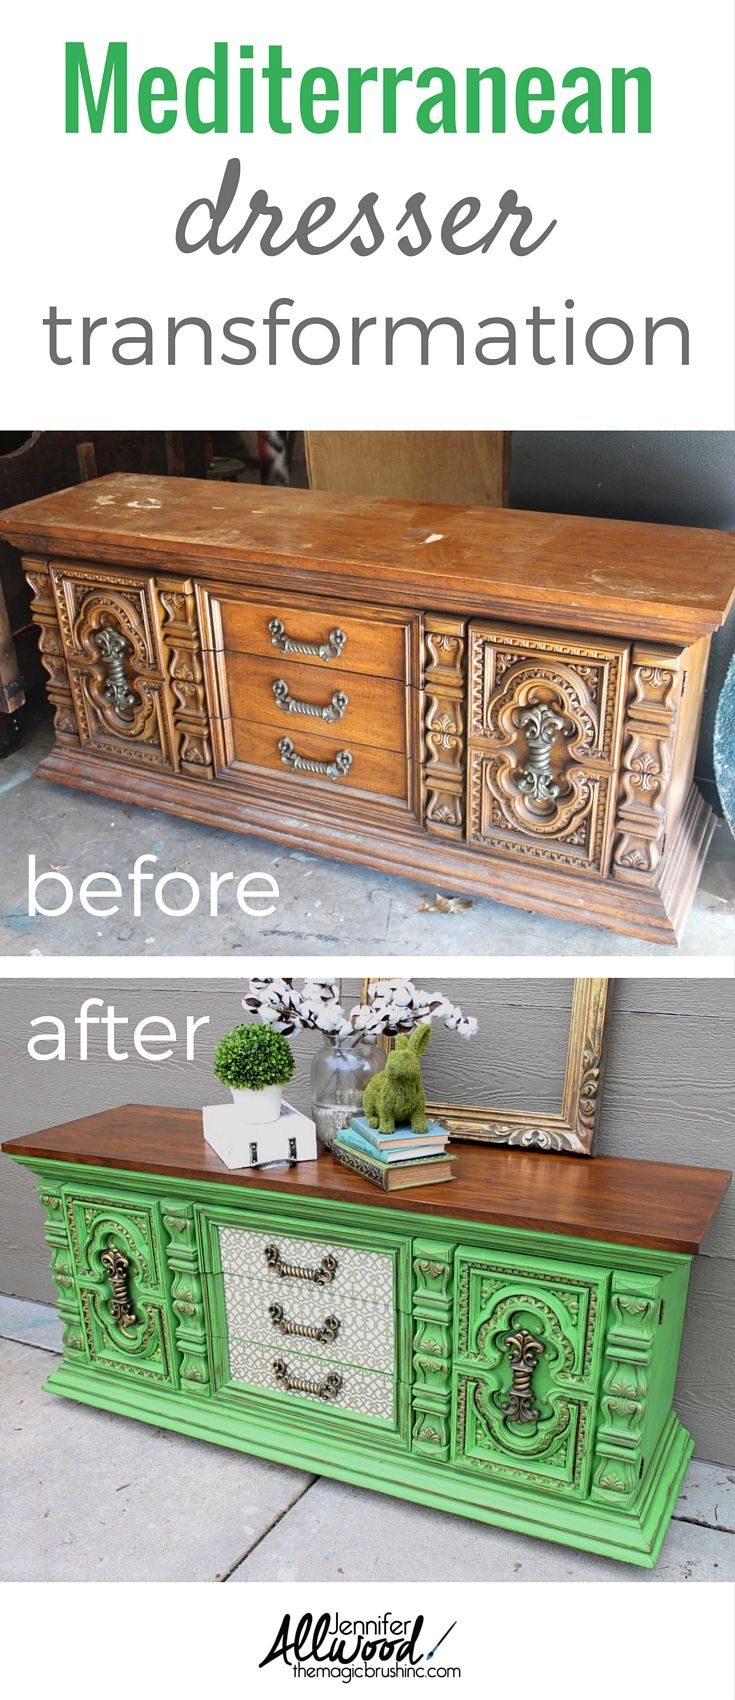 A bold Mediterranean dresser transformation! Check out this furniture makeover using a green apple color and decoupaged tissued drawers. More Painting tips, color advice and DIY projects at theMagicBrushinc.com